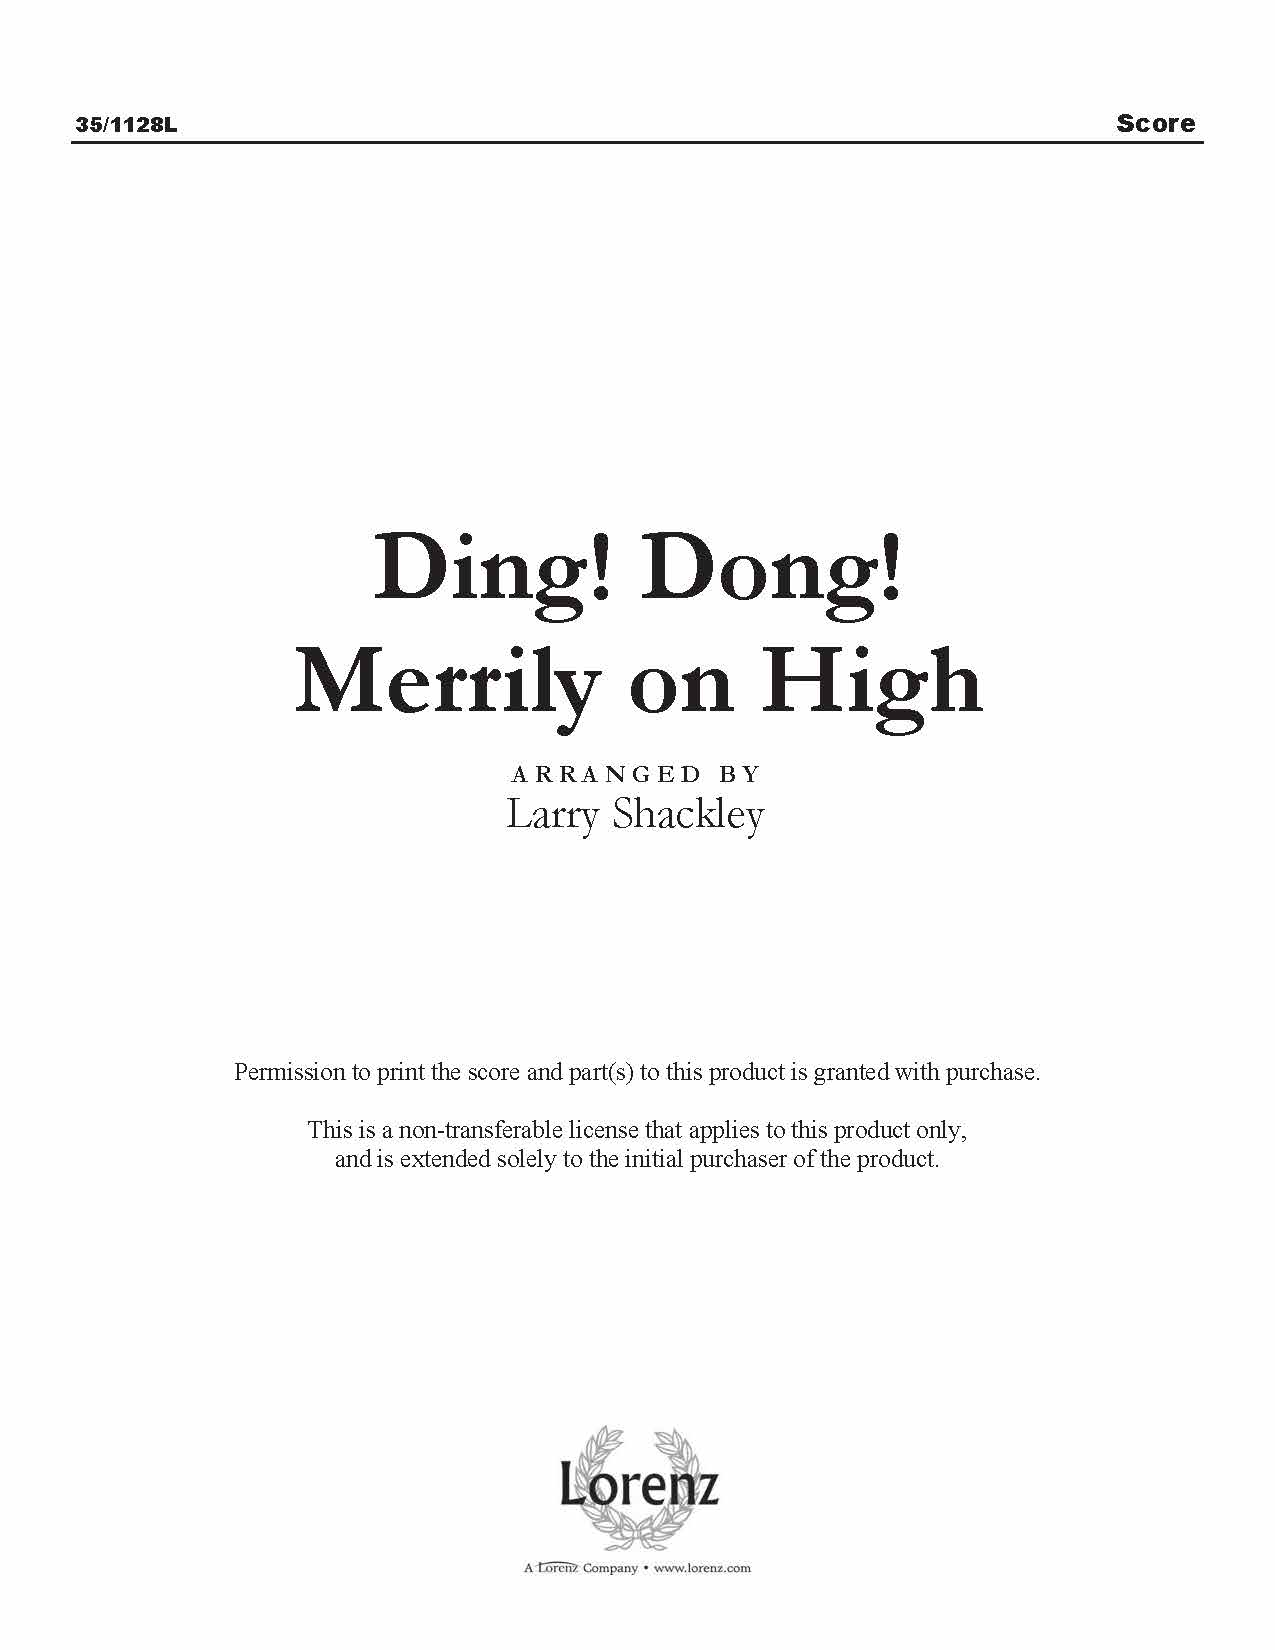 Ding! Dong! Merrily on High (Digital Delivery)